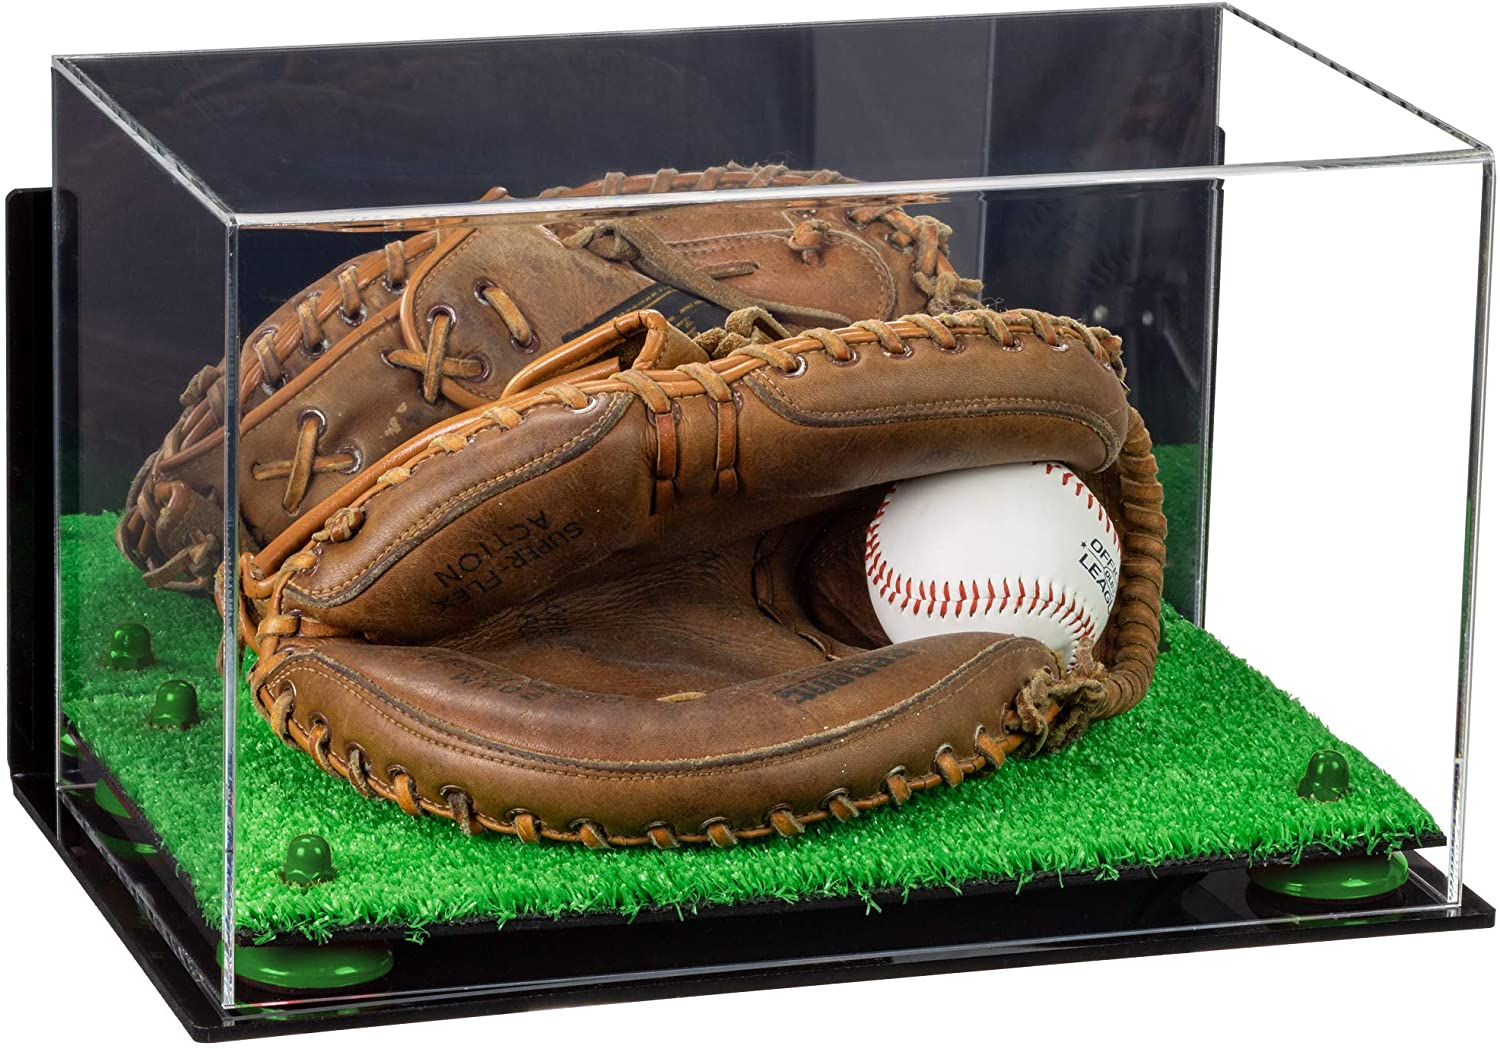 Better Display Cases Acrylic Full Size Baseball Catchers Glove Display Case